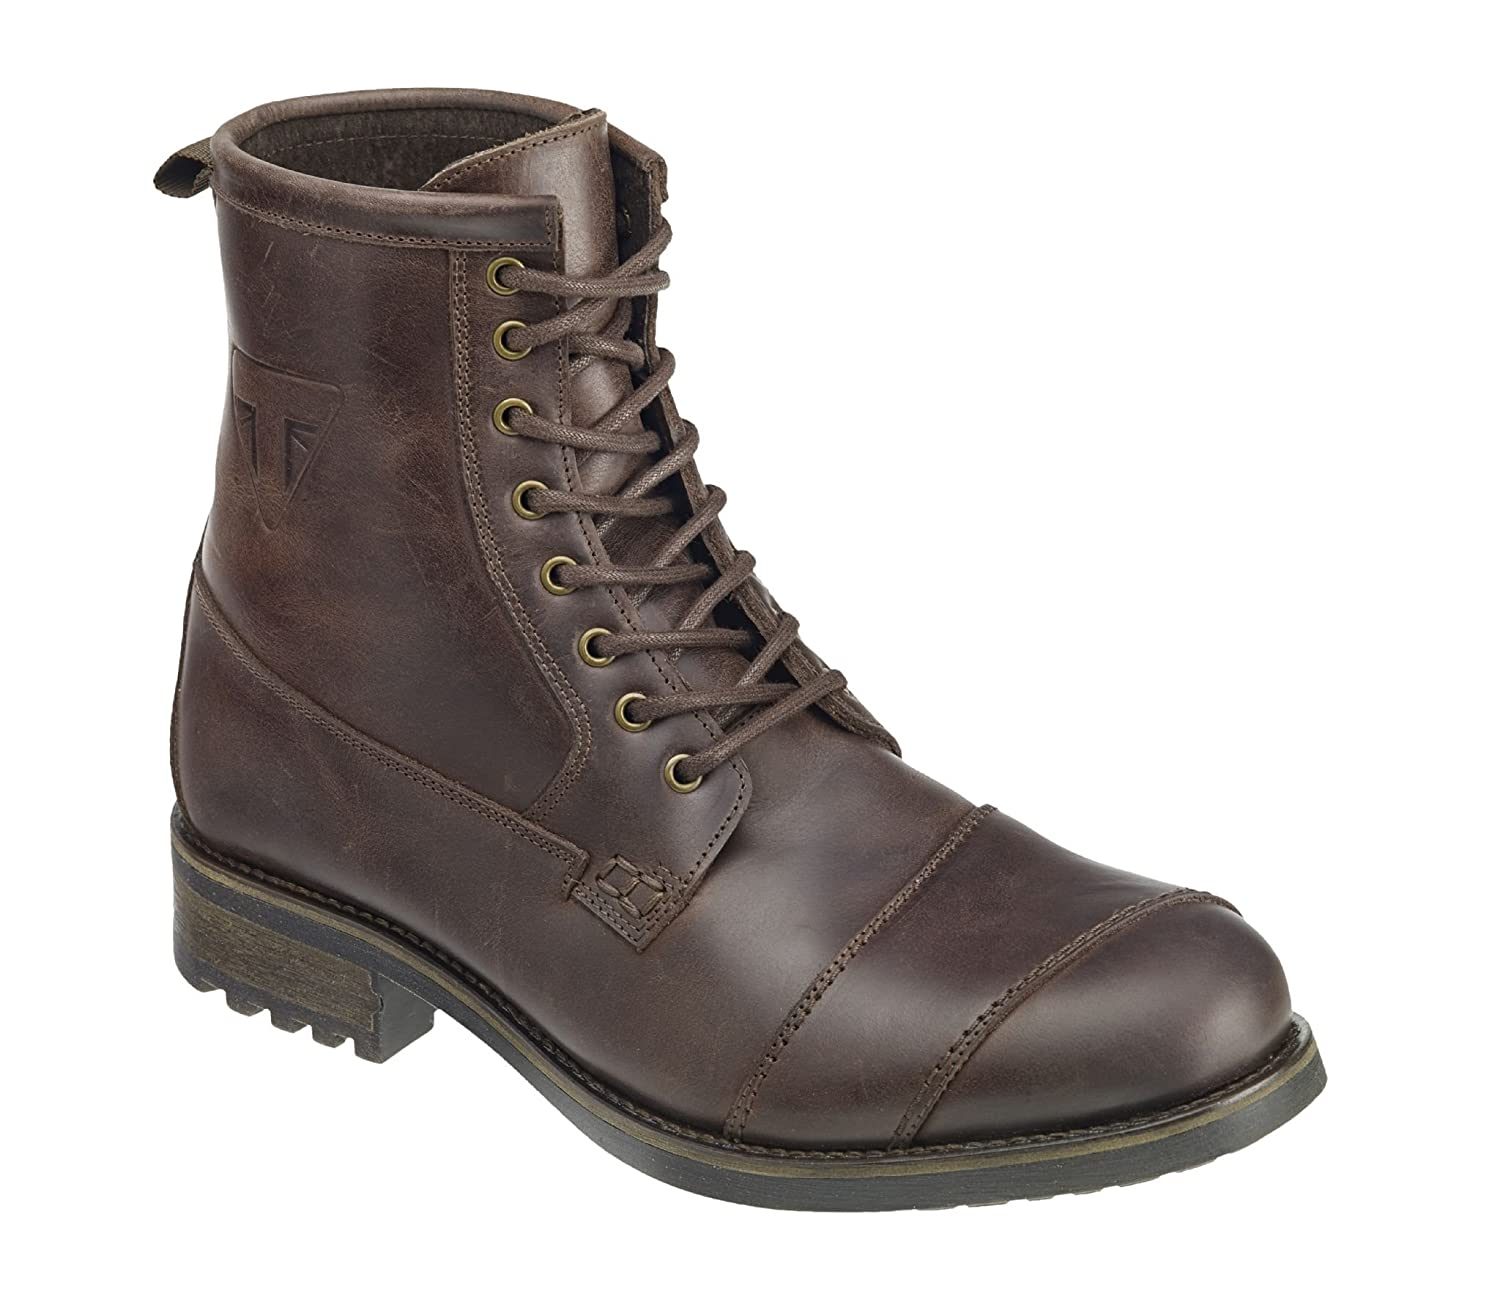 e67daabf9f0 Triumph Motorcycles Classic Boot Brown (45): Amazon.co.uk: Shoes & Bags